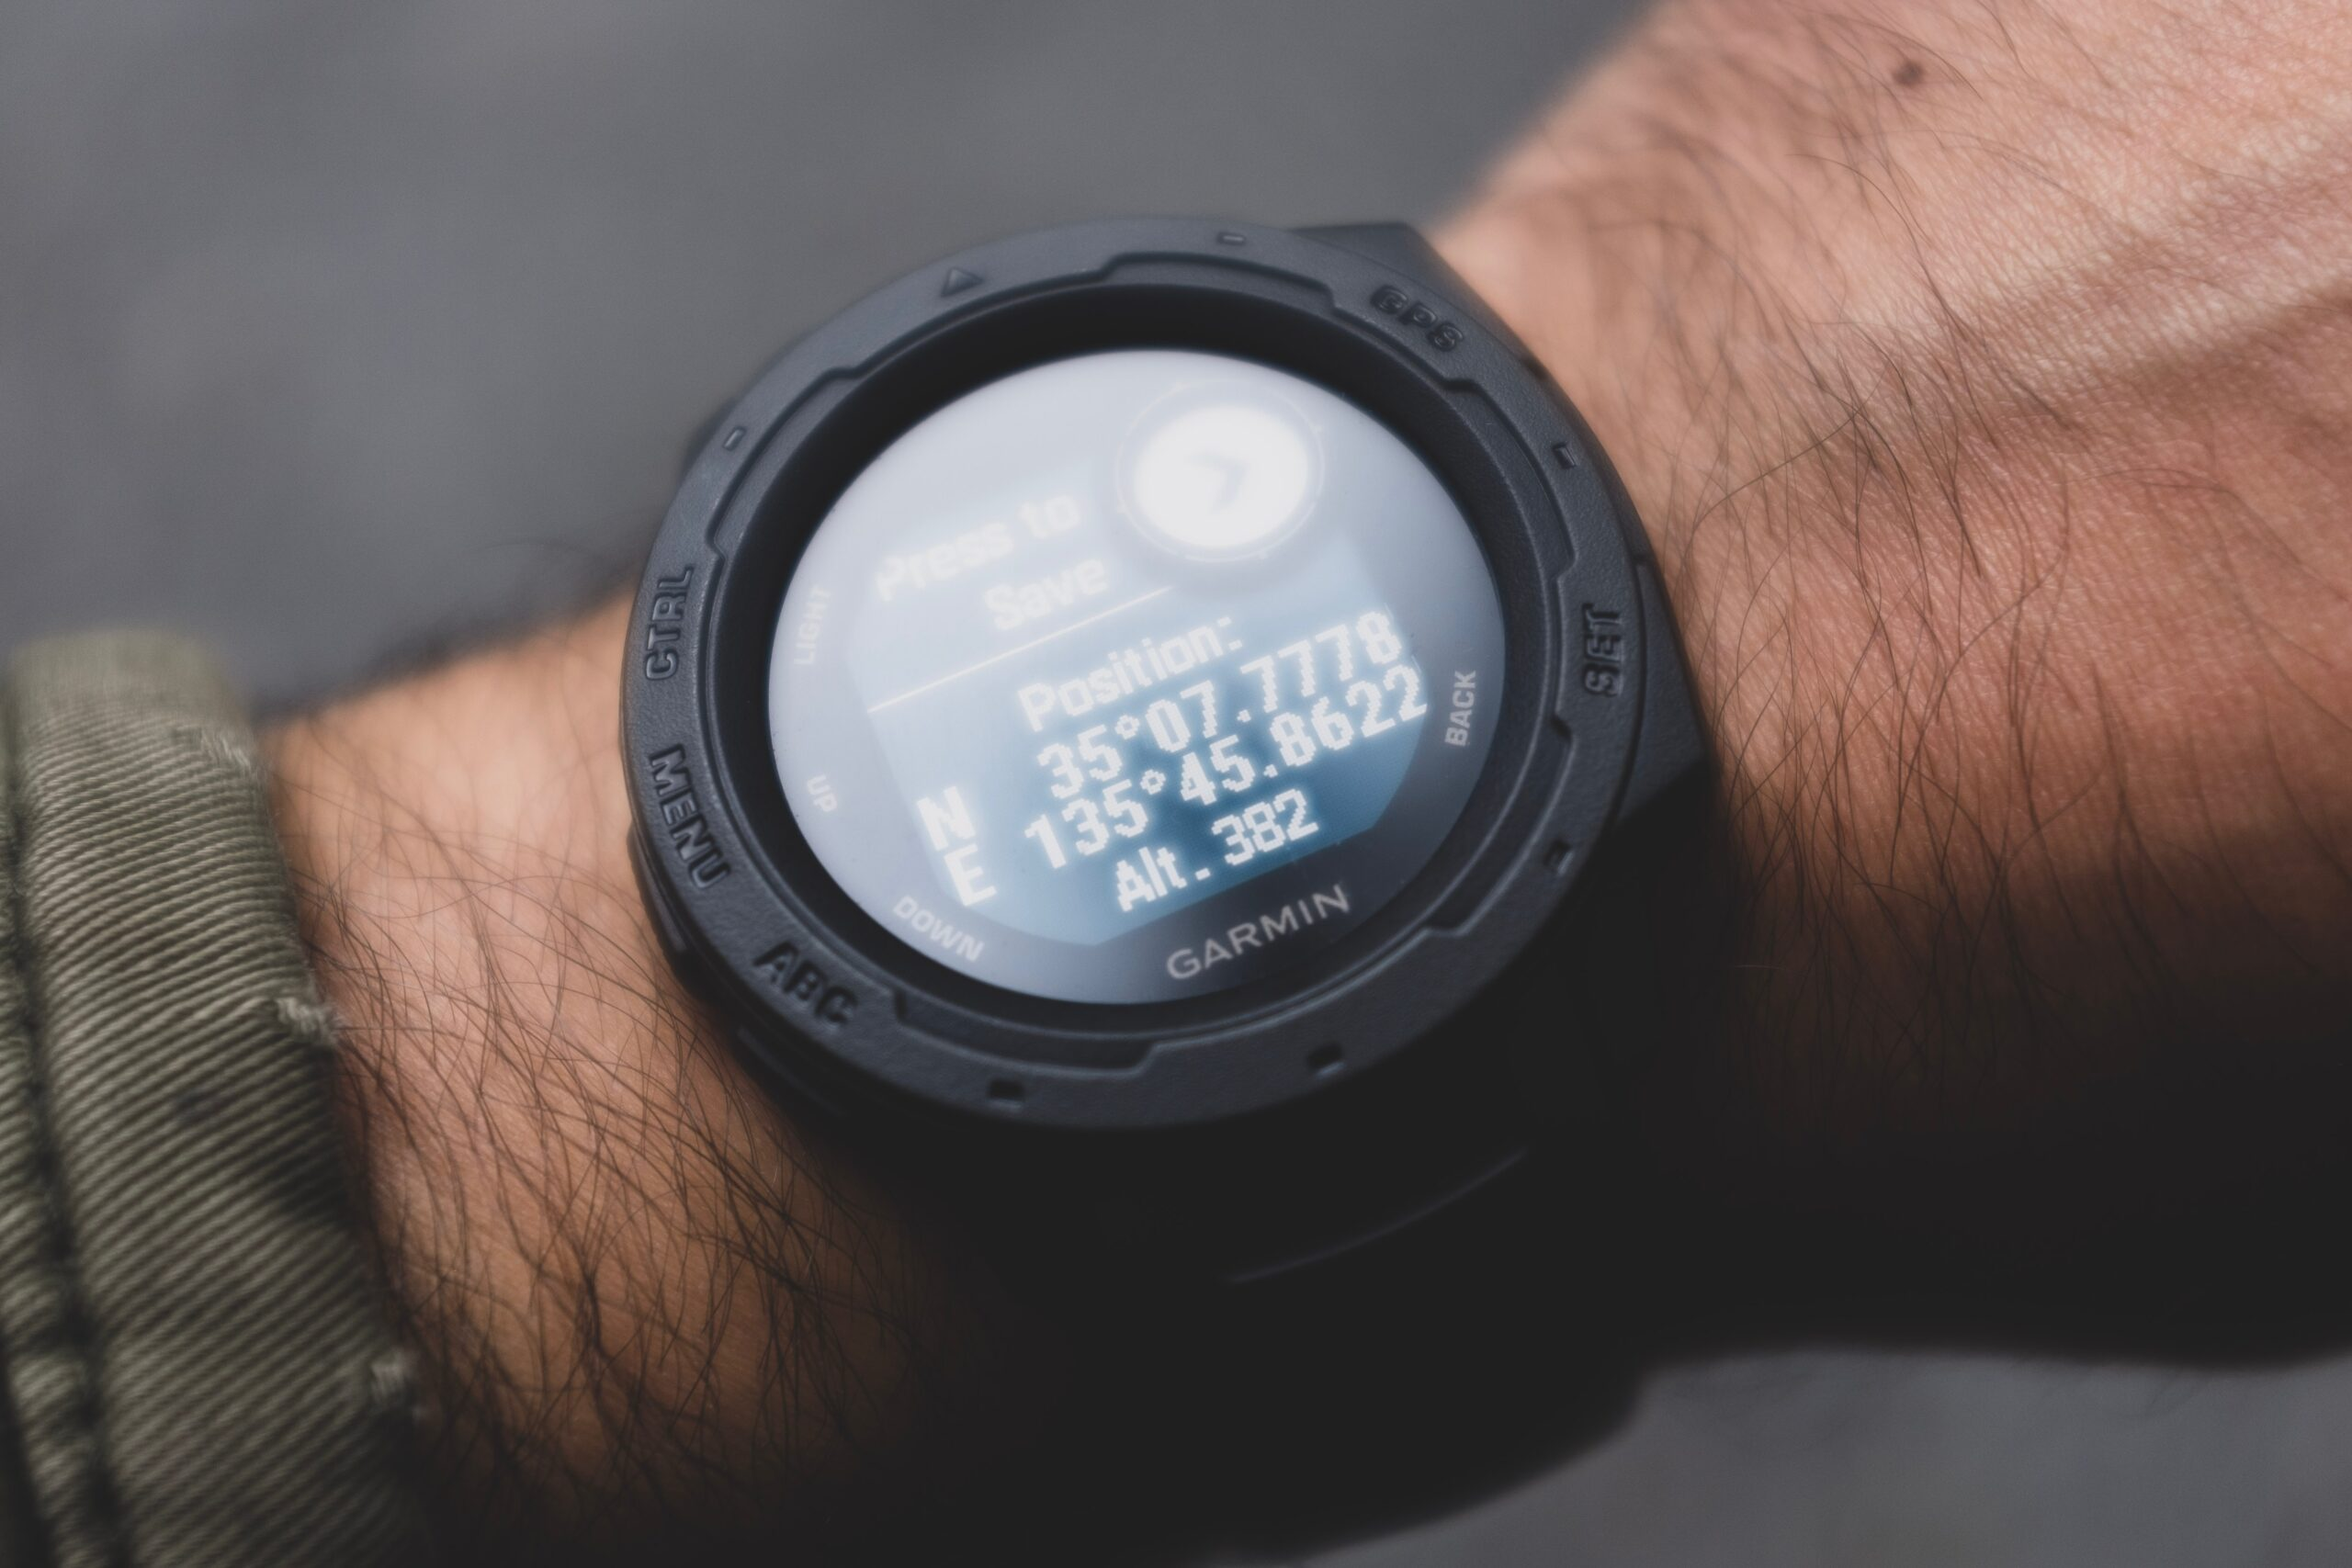 The new Snapdragon 4100 from Qualcomm offers urgently needed improvements for the next Wear OS watches